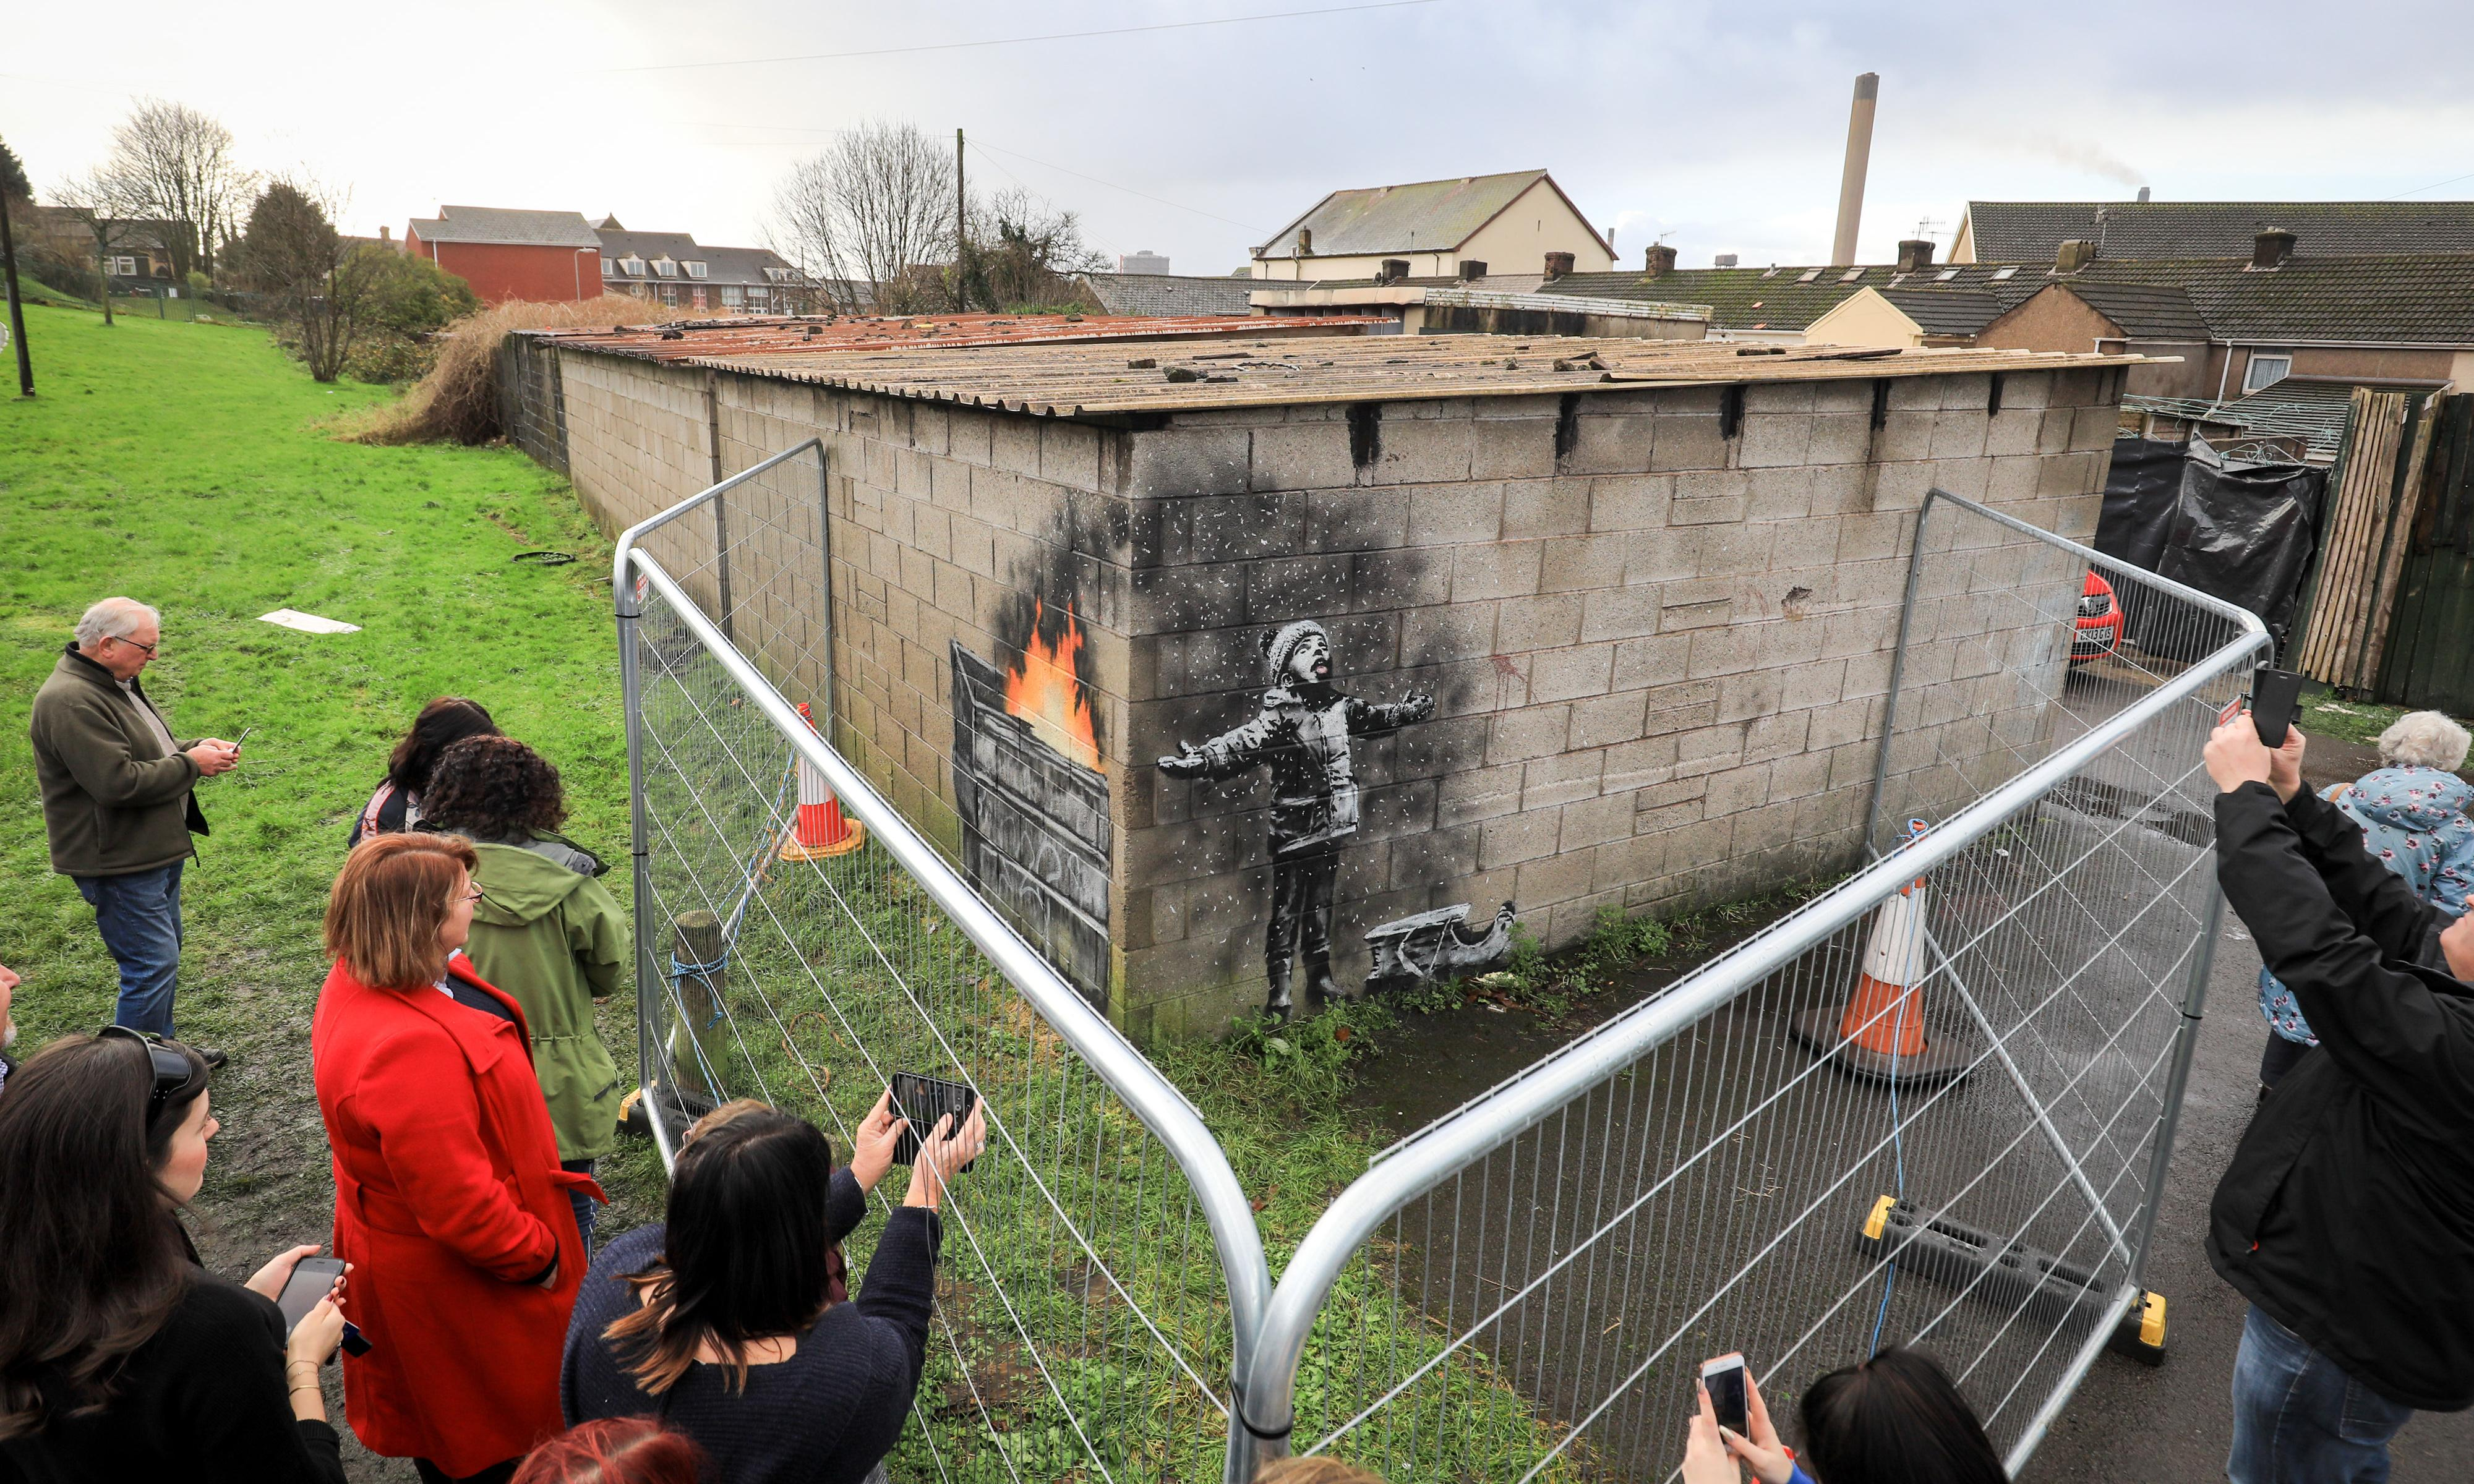 Banksy artwork likely to remain in Port Talbot